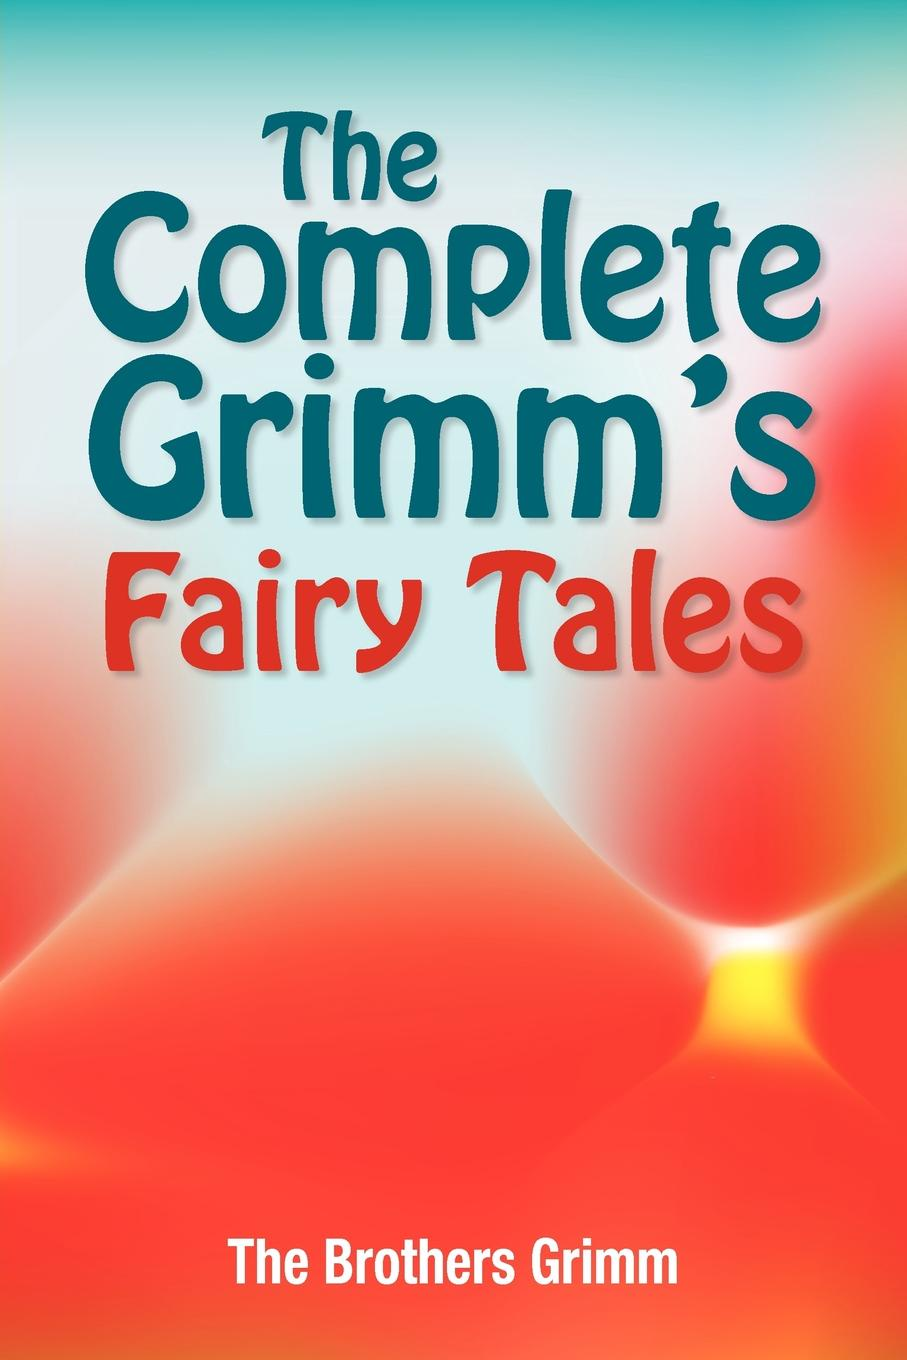 лучшая цена The Brothers Grimm, Jacob Ludwig Carl Grimm, Wilhelm Grimm The Complete Grimm's Fairy Tales